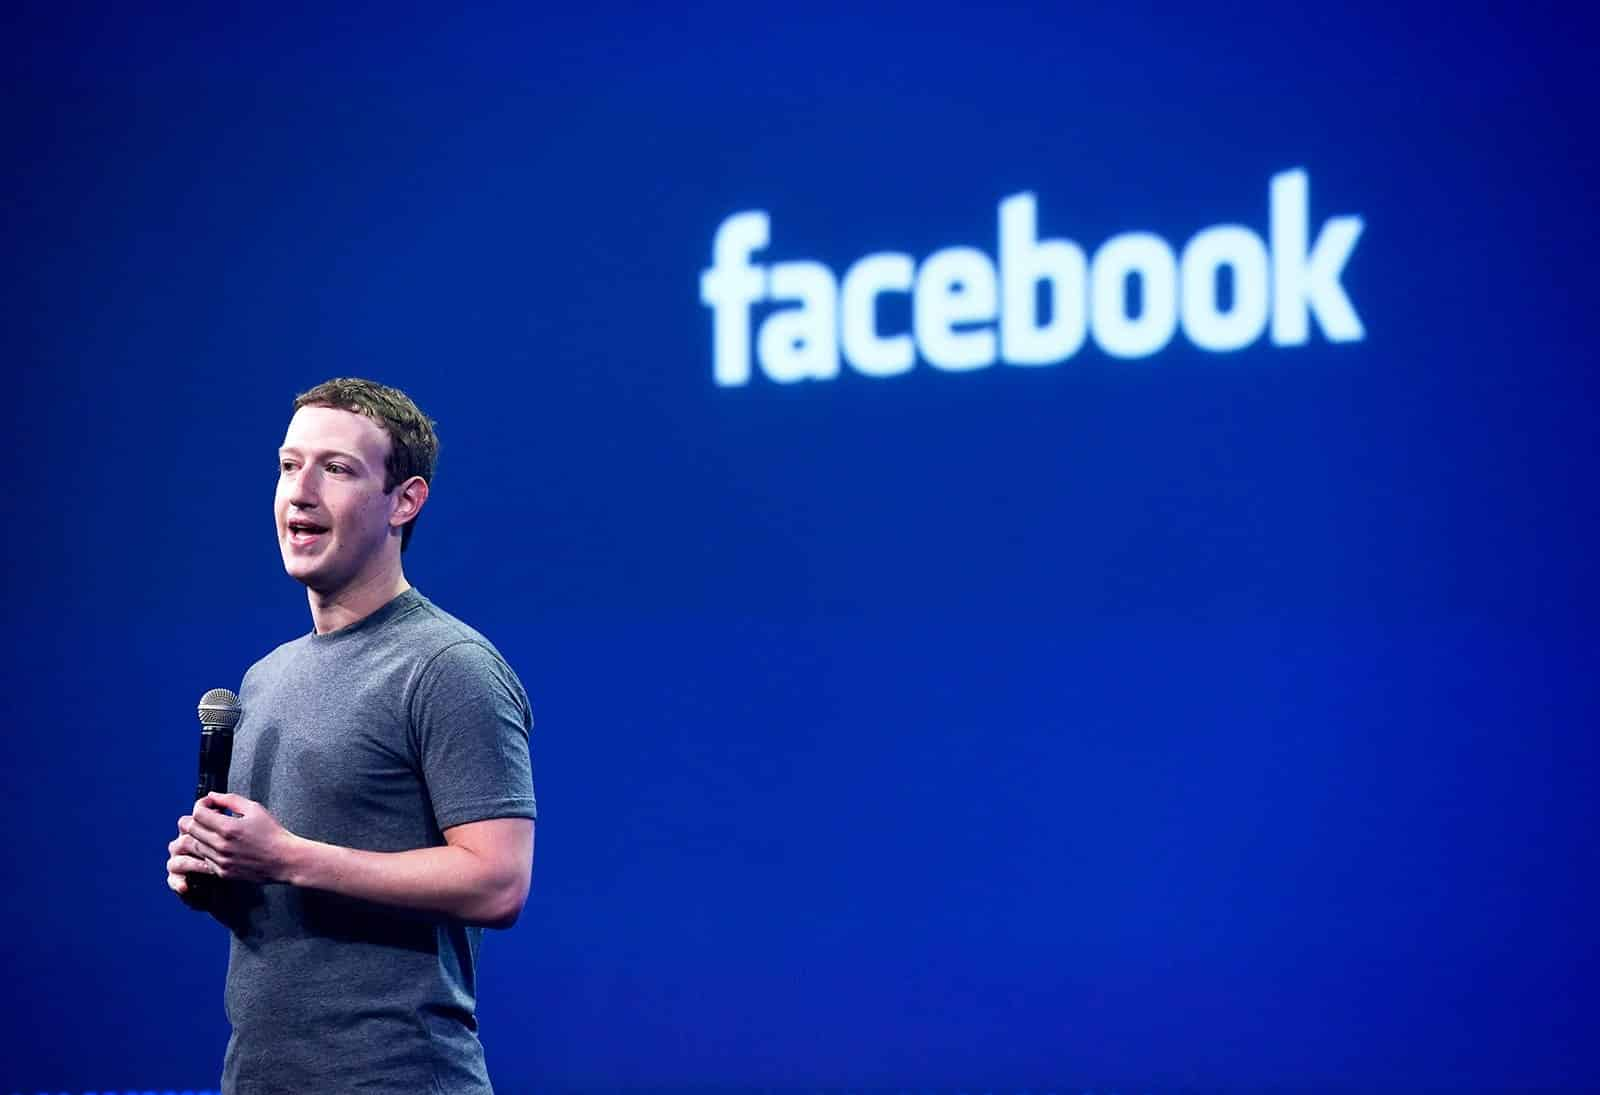 Zuckerberg mulls Blockchain to boost Facebook security